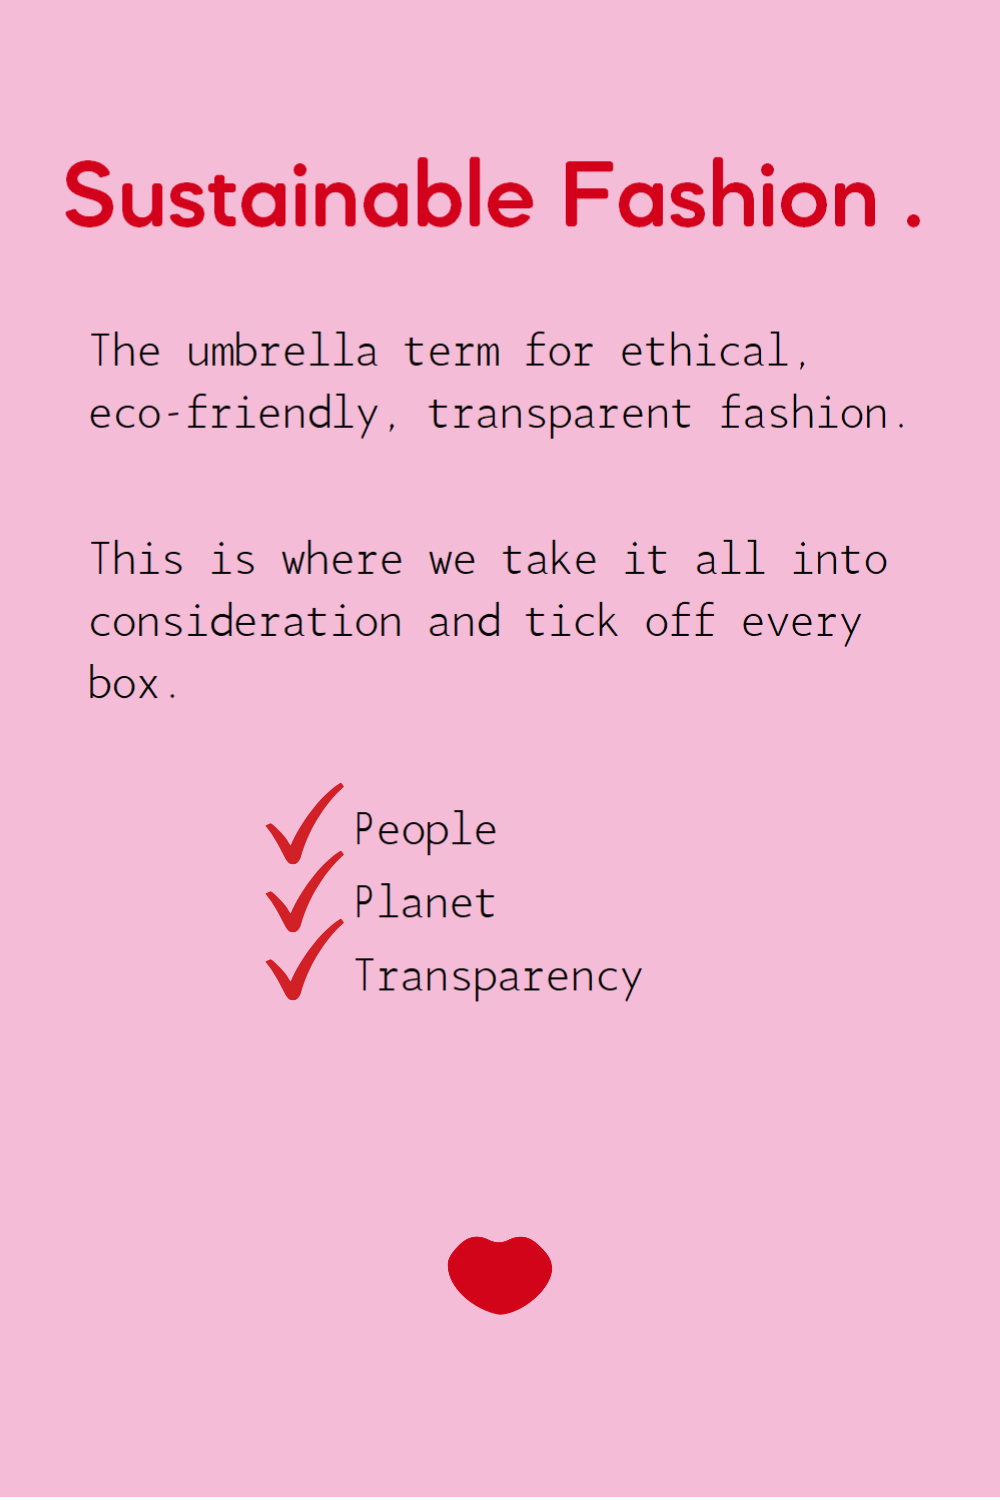 Sustainable Fashion Definition